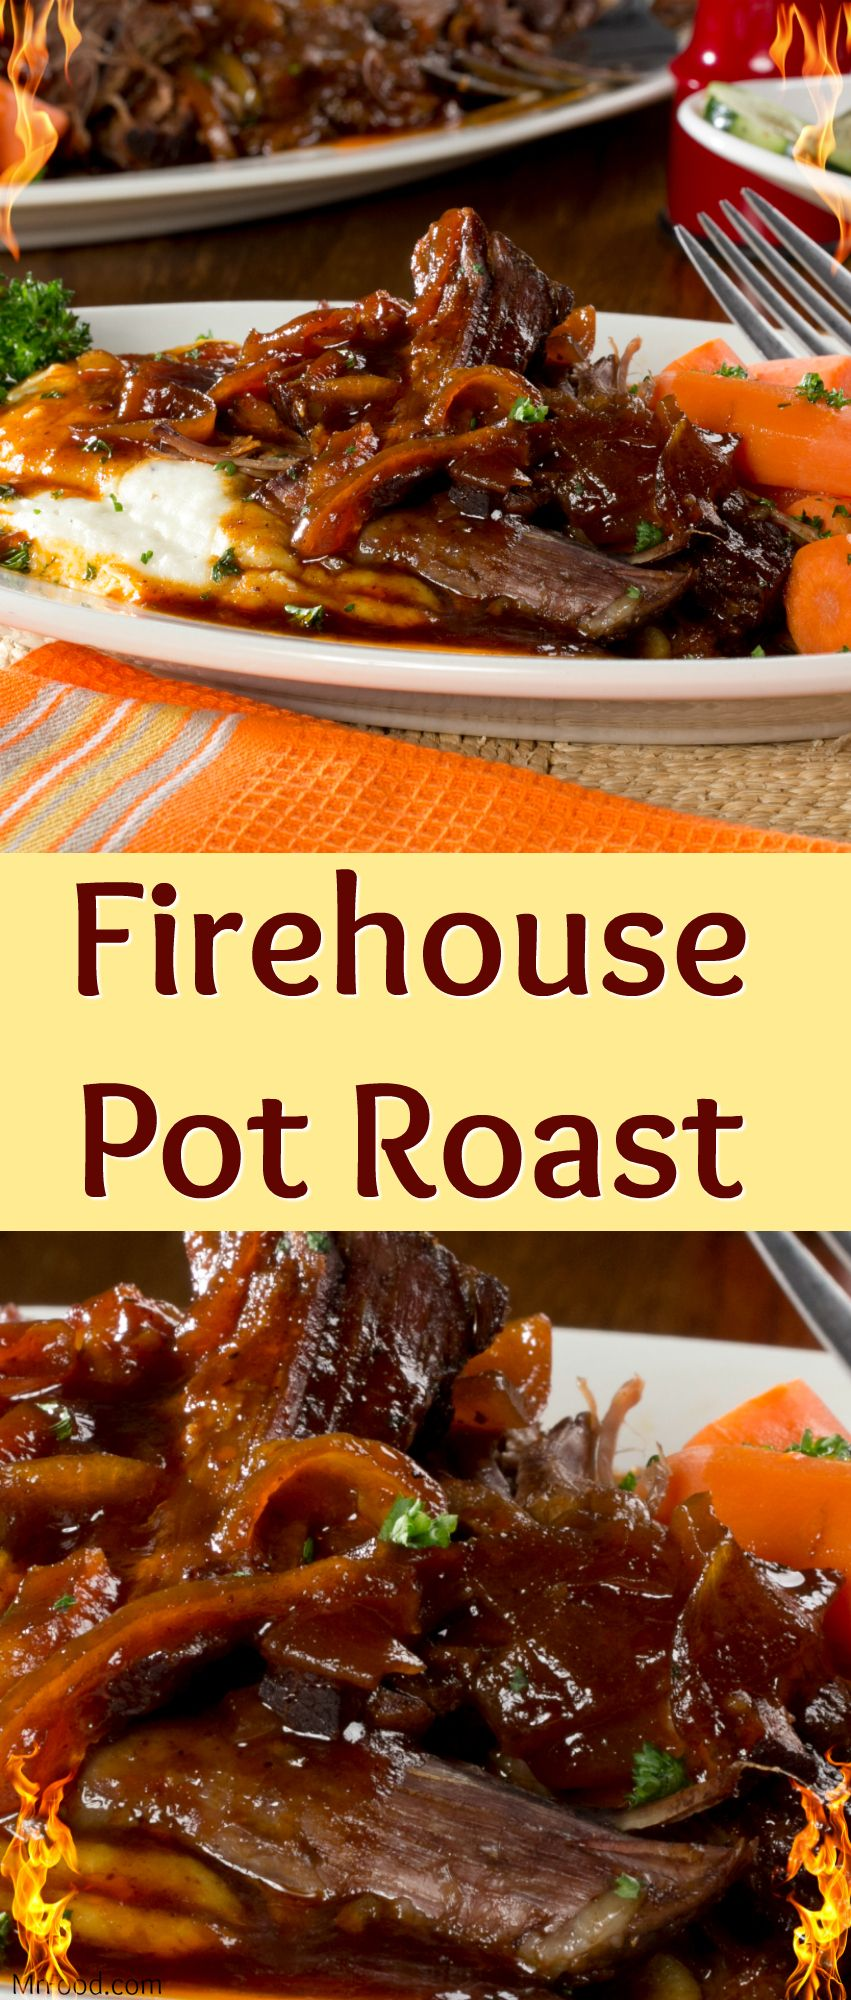 We Visited A Local Firehouse To Find Out What One Of Their Favorite Dishes Is And Came Out With A Chuck Roast Recipe Thats So Good Your Whole Gang Is